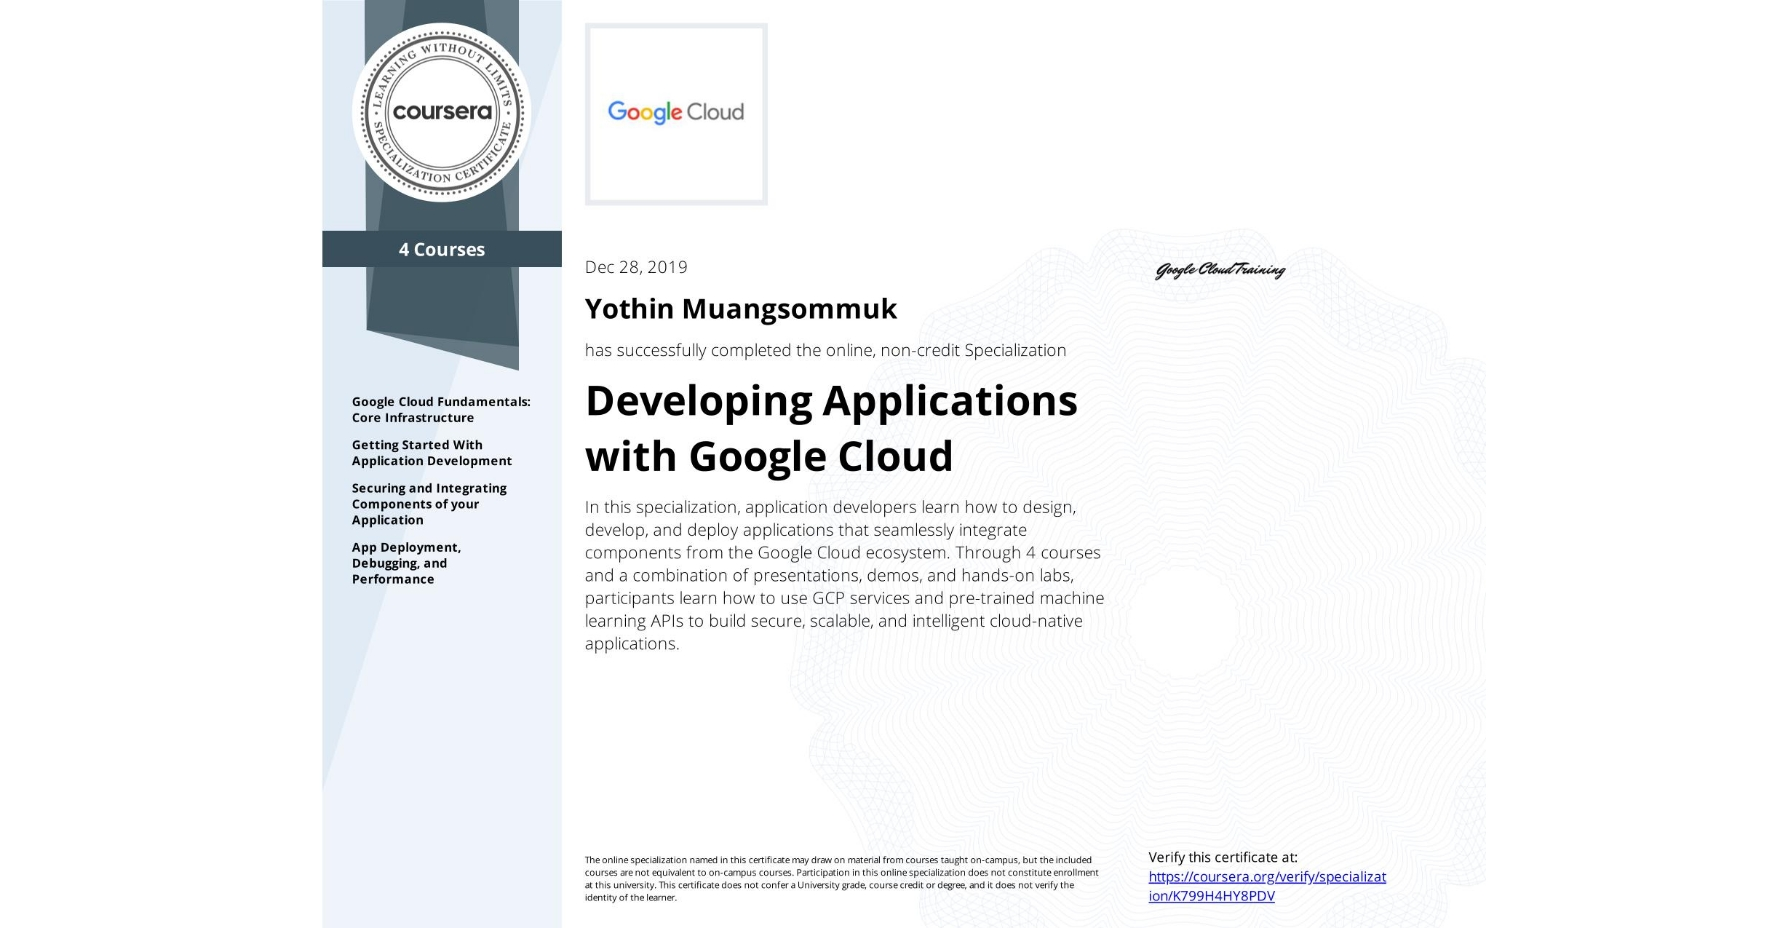 View certificate for Yothin Muangsommuk, Developing Applications with Google Cloud, offered through Coursera. In this specialization, application developers learn how to design, develop, and deploy applications that seamlessly integrate components from the Google Cloud ecosystem. Through 4 courses and a combination of presentations, demos, and hands-on labs, participants learn how to use GCP services and pre-trained machine learning APIs to build secure, scalable, and intelligent cloud-native applications.